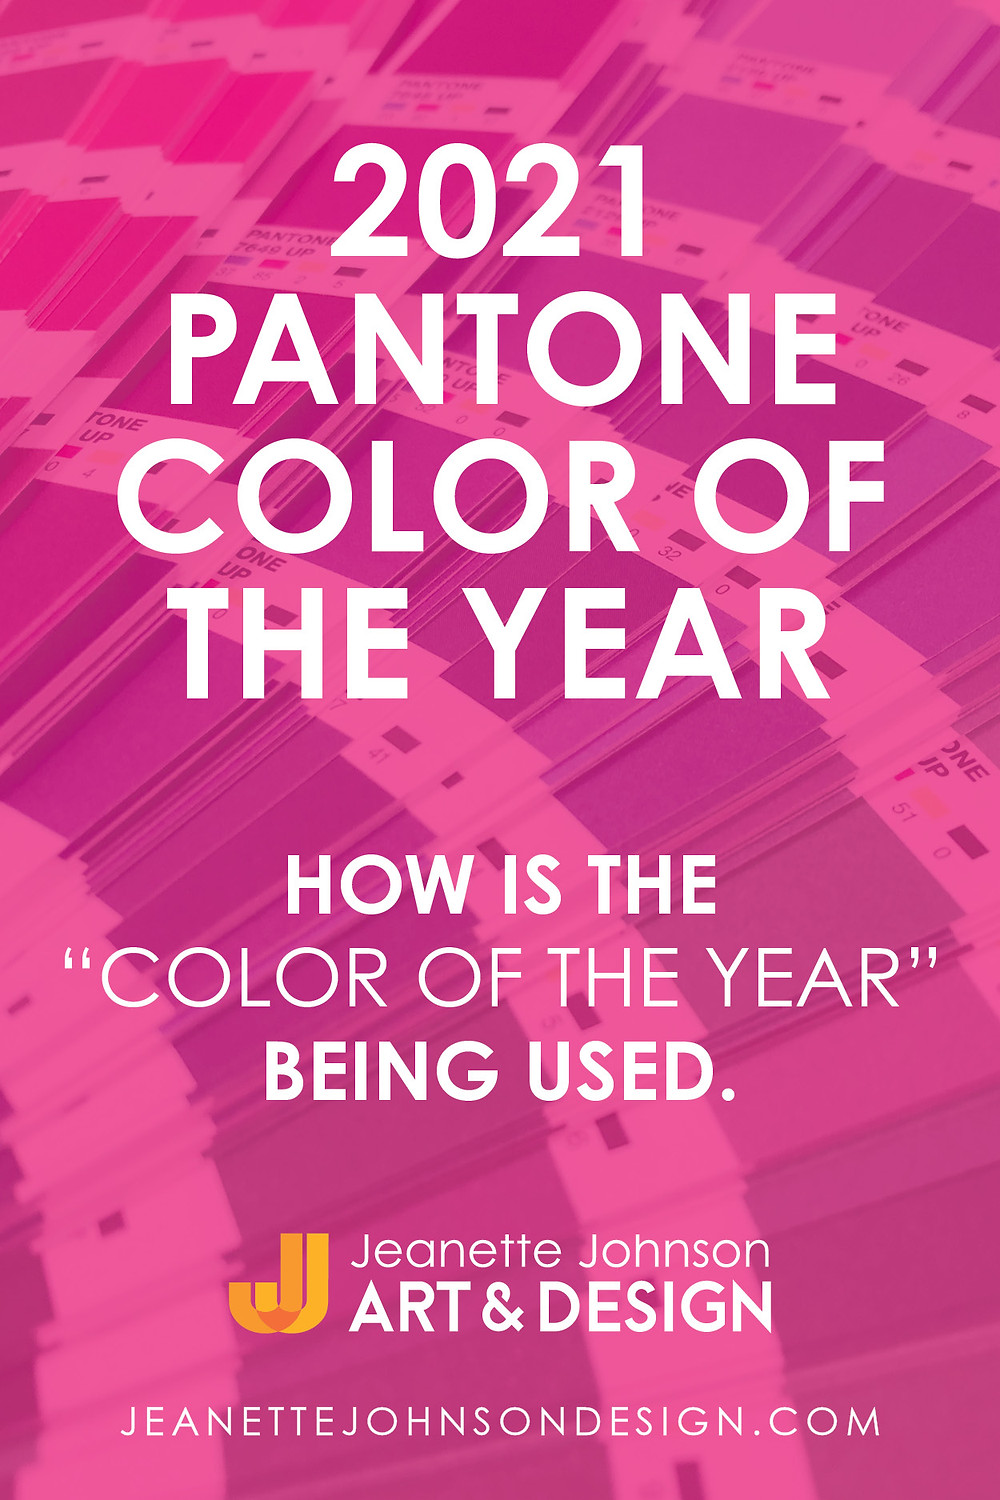 Pin Image for 2021 Pantone color of the year